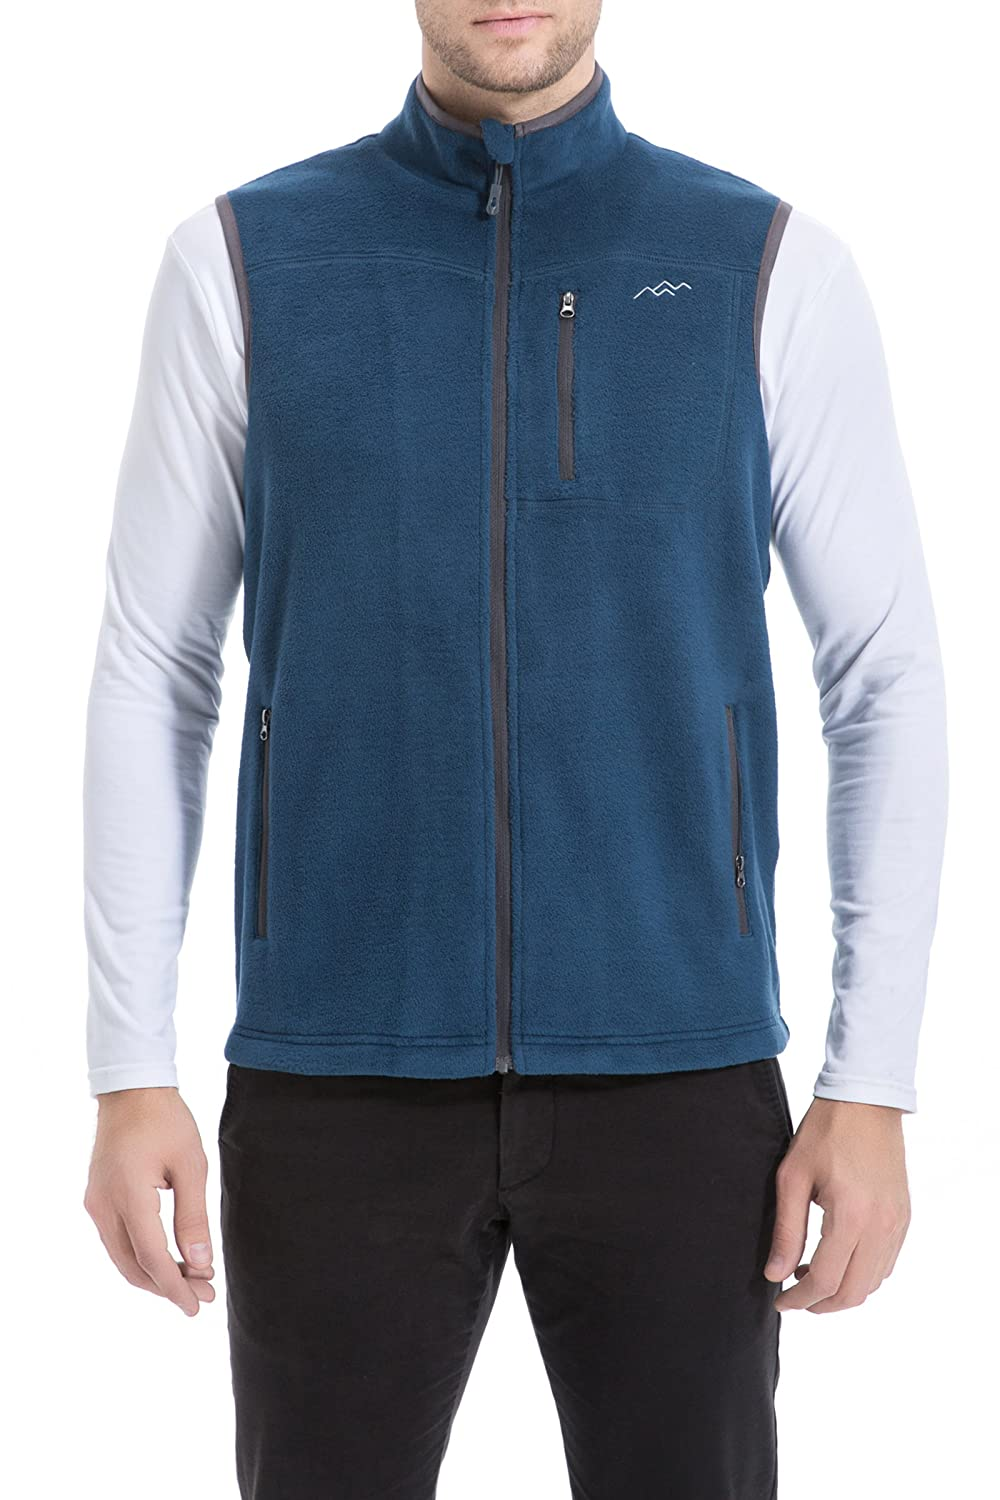 Trailside Supply Co. Men's Front-Zip Fleece Vest 012-Fleecevest-PARENT